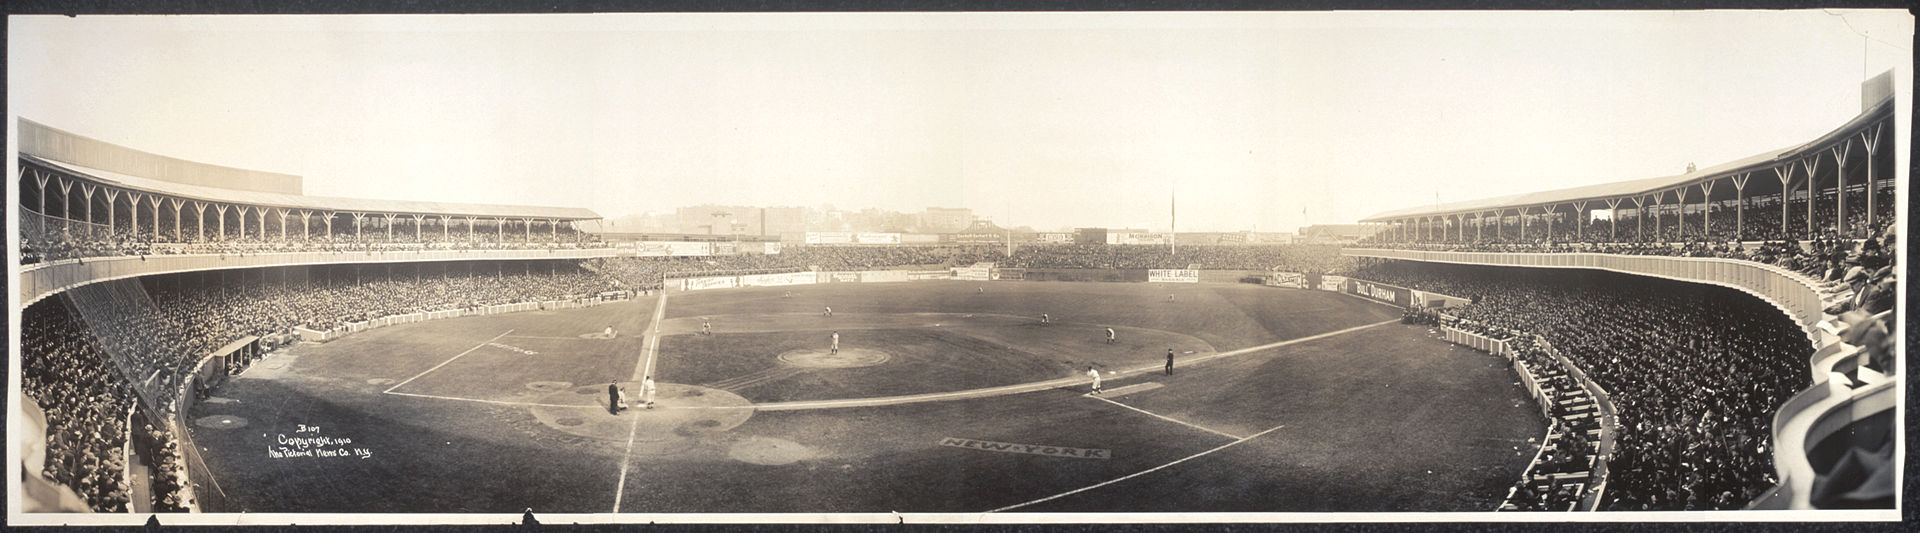 Polo_Grounds_1910.jpg